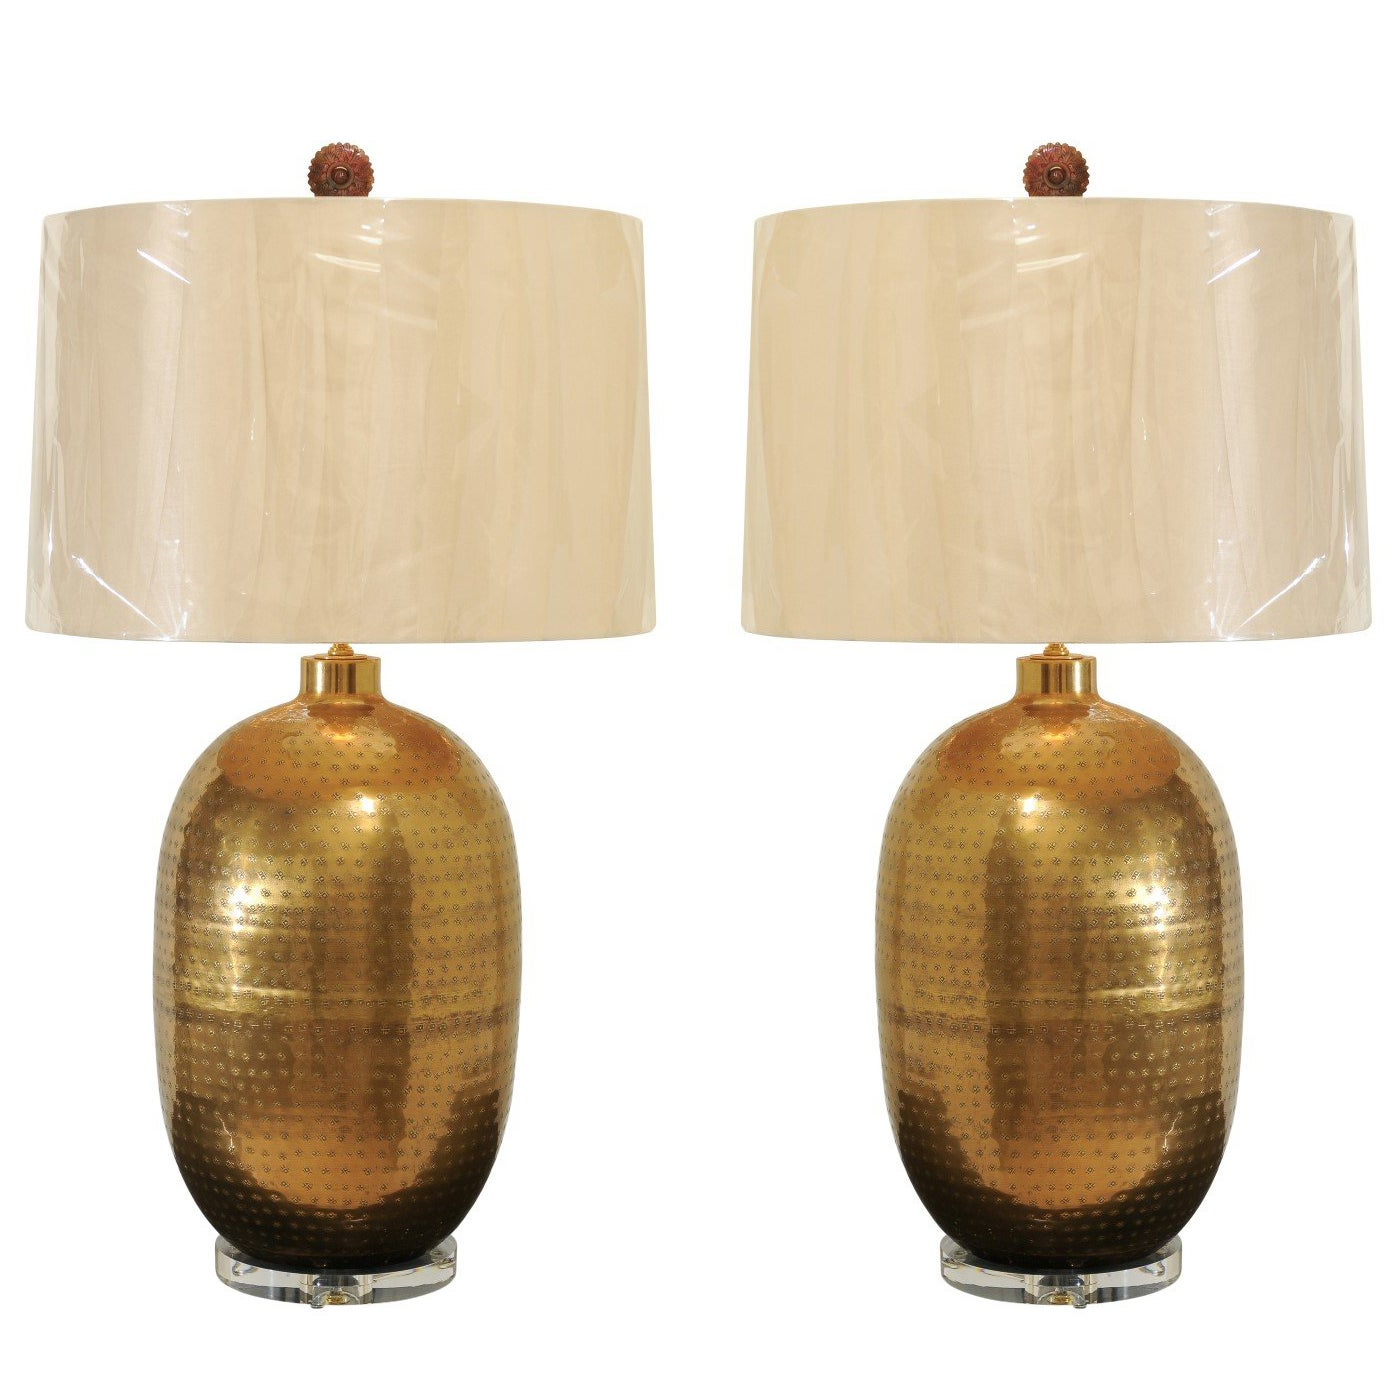 Dramatic Pair of Large-Scale Textured Brass Lamps, circa 1970